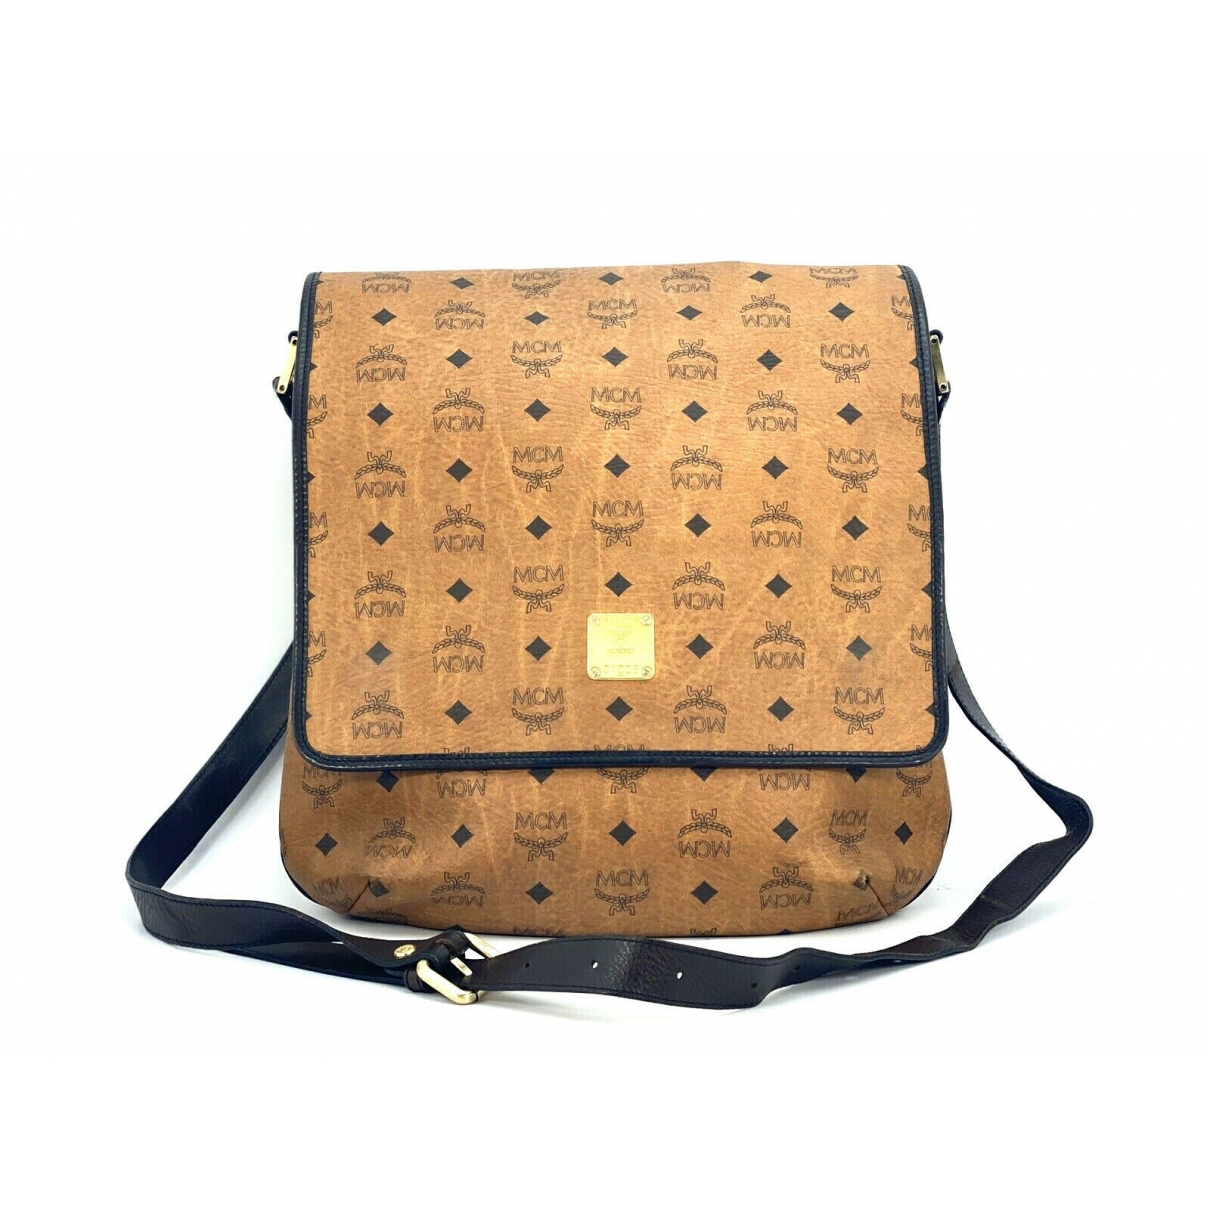 Mcm \N Cloth handbag for Women \N